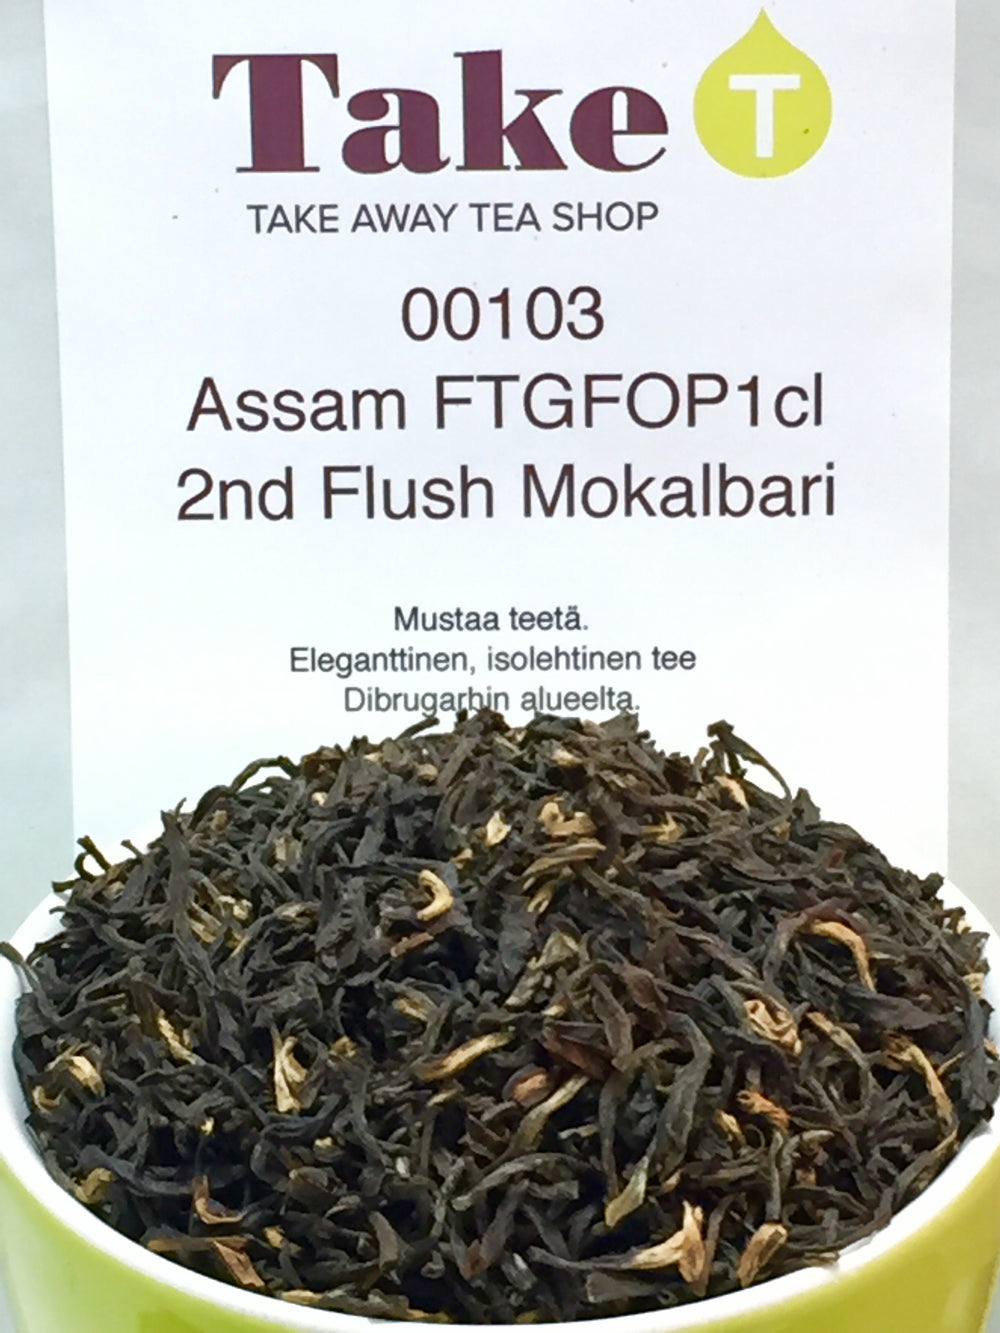 Assam second flush FTGFOPIcl Mokalbari